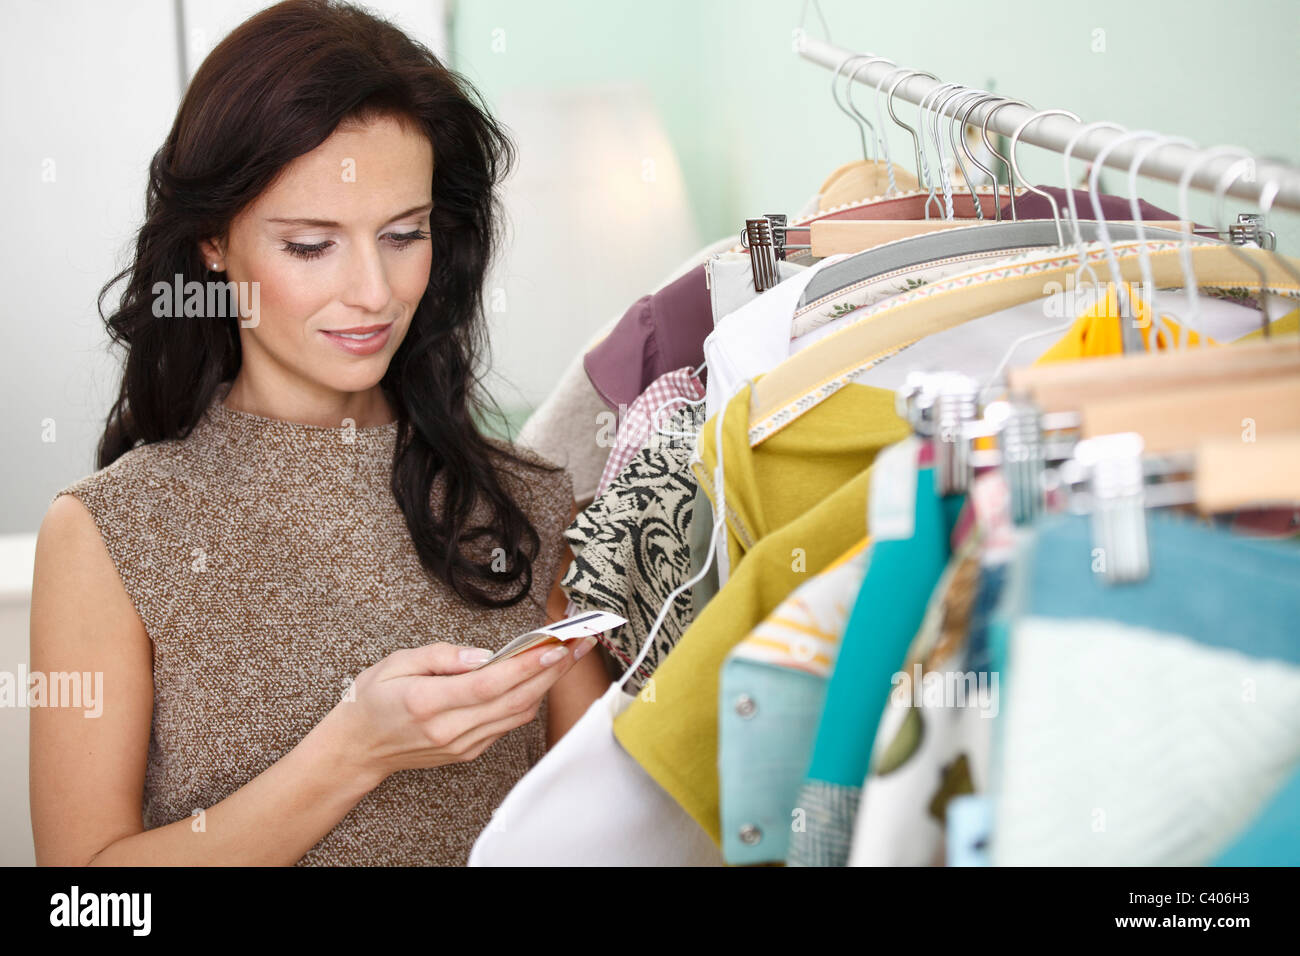 woman checking price tag - Stock Image